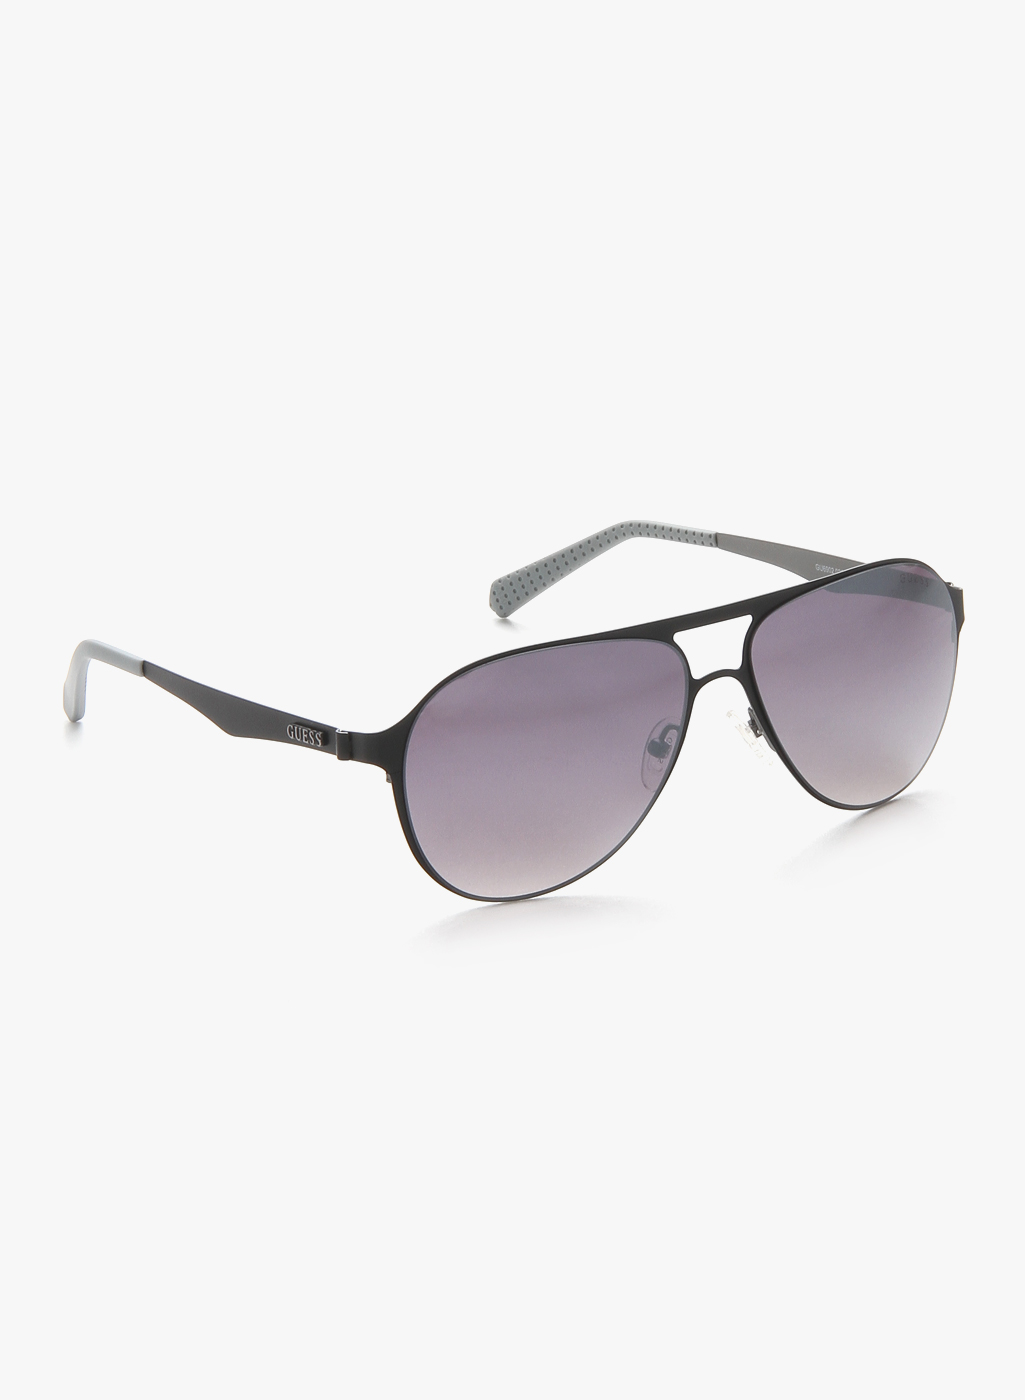 guess men sunglasses price list in india 12 june 2019 guess menguess men aviator sunglasses gus69025802csg 02c